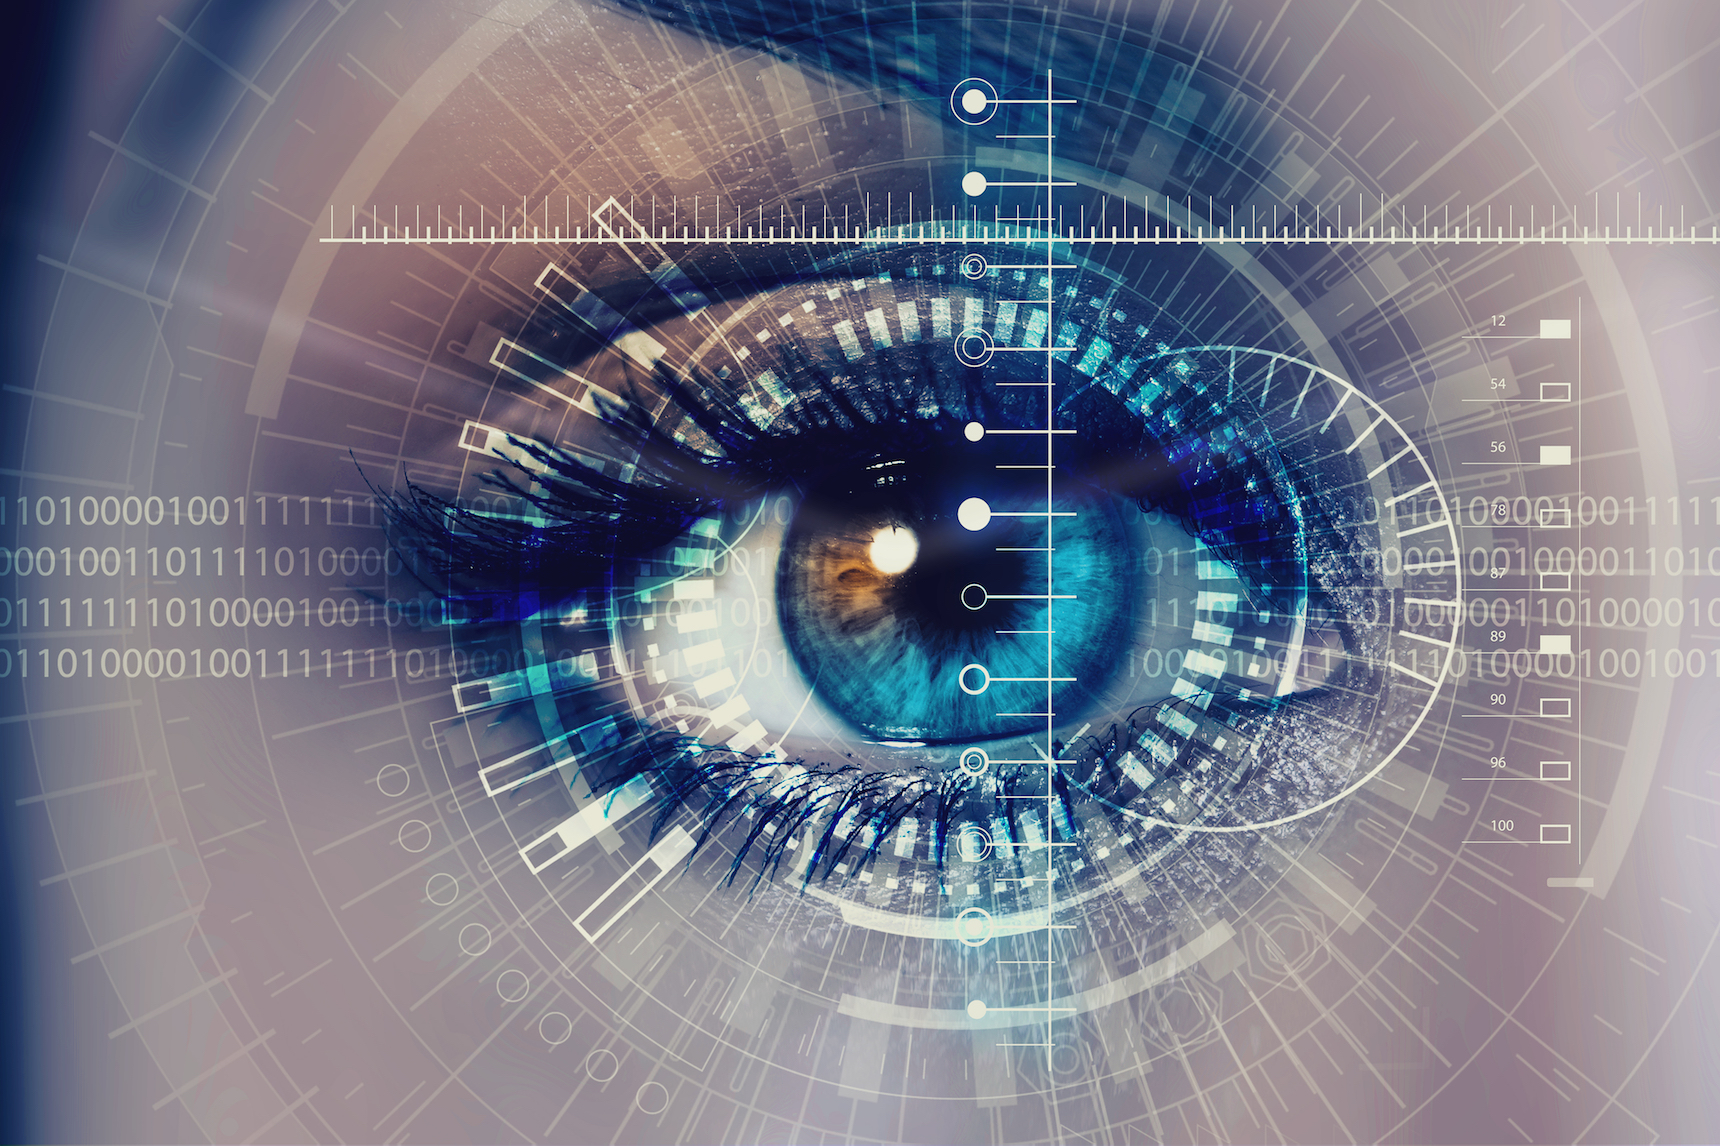 Scientists at the University of South Australia have developed technology that can predict the personality traits of humans based on their eye movement.